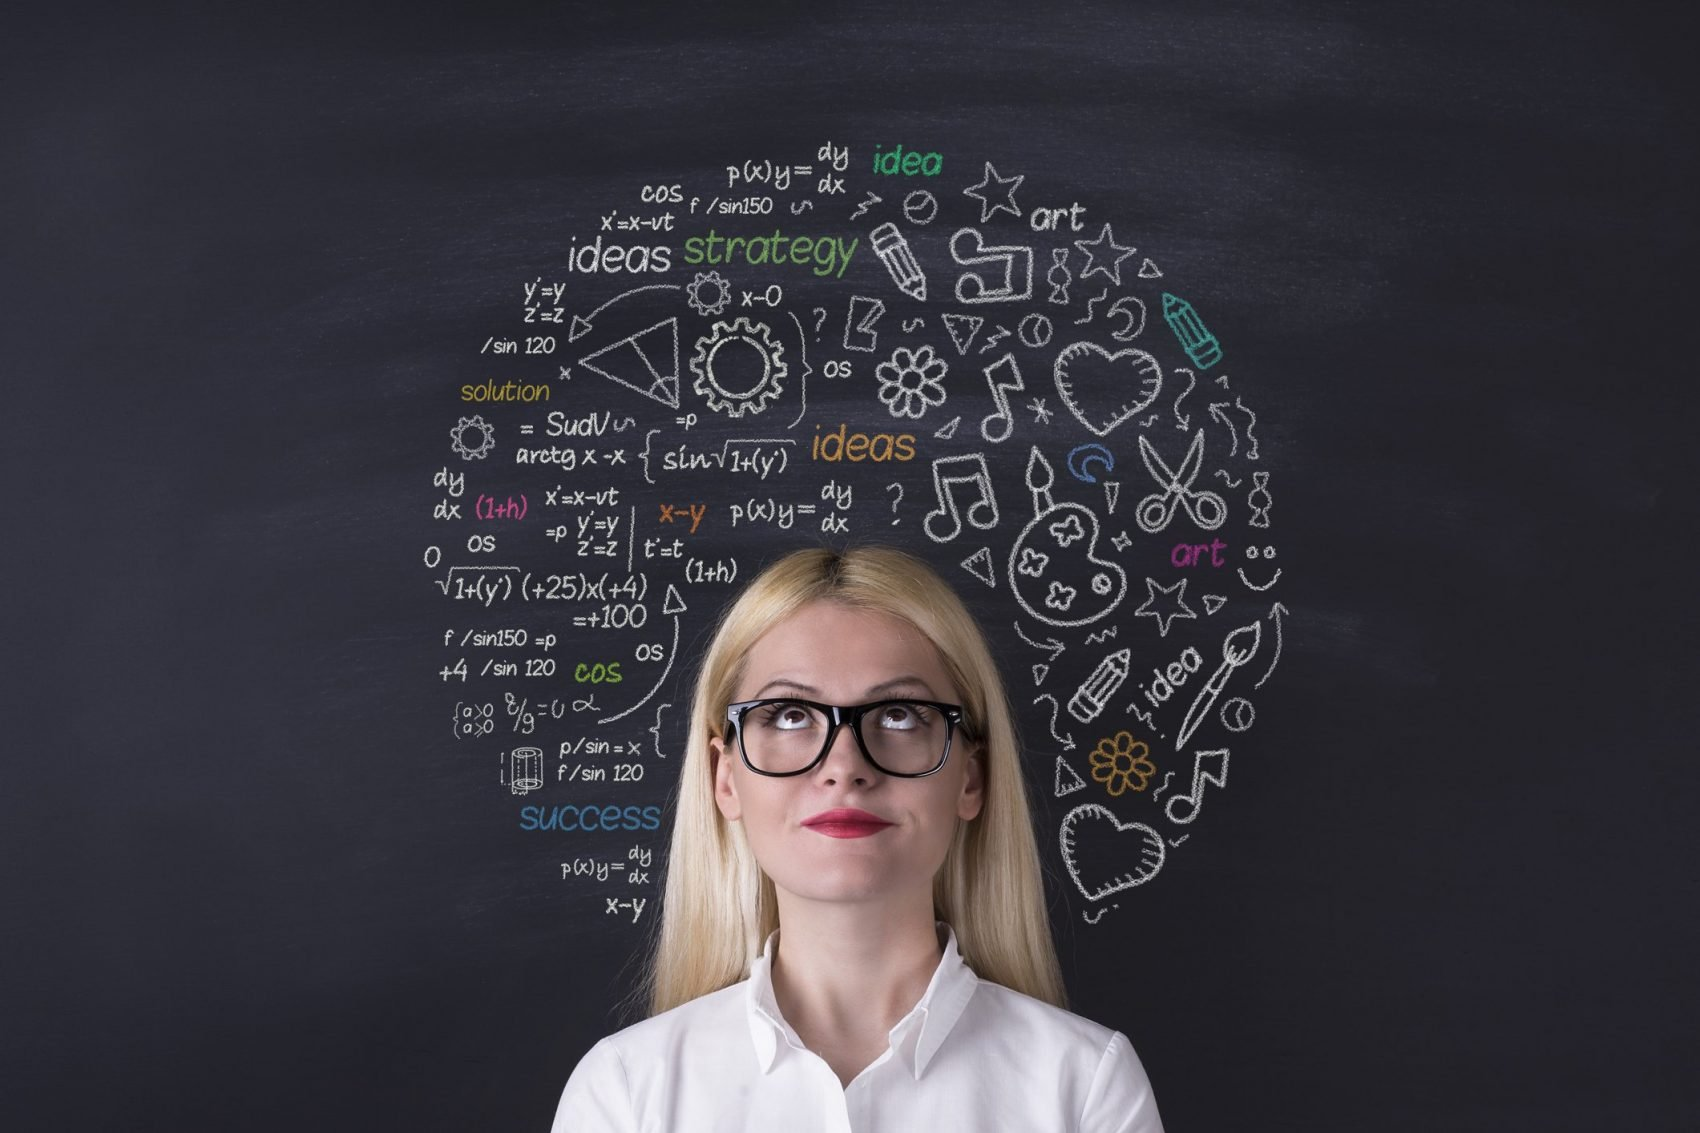 This is picture of a Business woman brain hemisphere on the blackboardfor an article called Why Competitive Intelligence And Data Analytics Are Different But Work Well Together by Octopus Competitive Intelligence Competitor Analysis focused on creating certainty